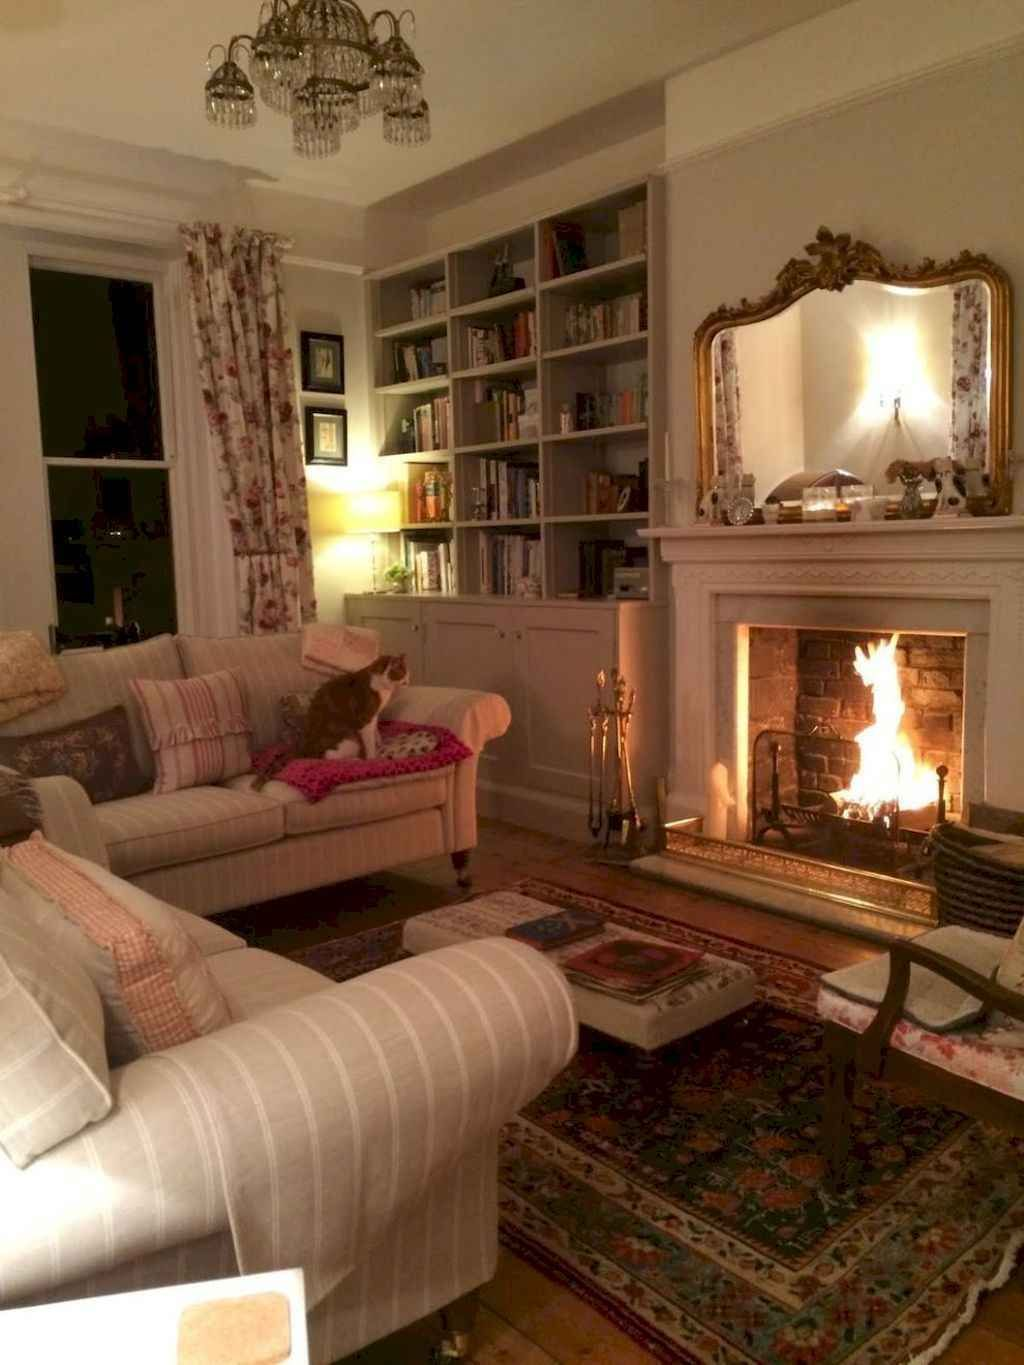 08 Gorgeous French Country Living Room Decor Ideas - DoMakeover.com